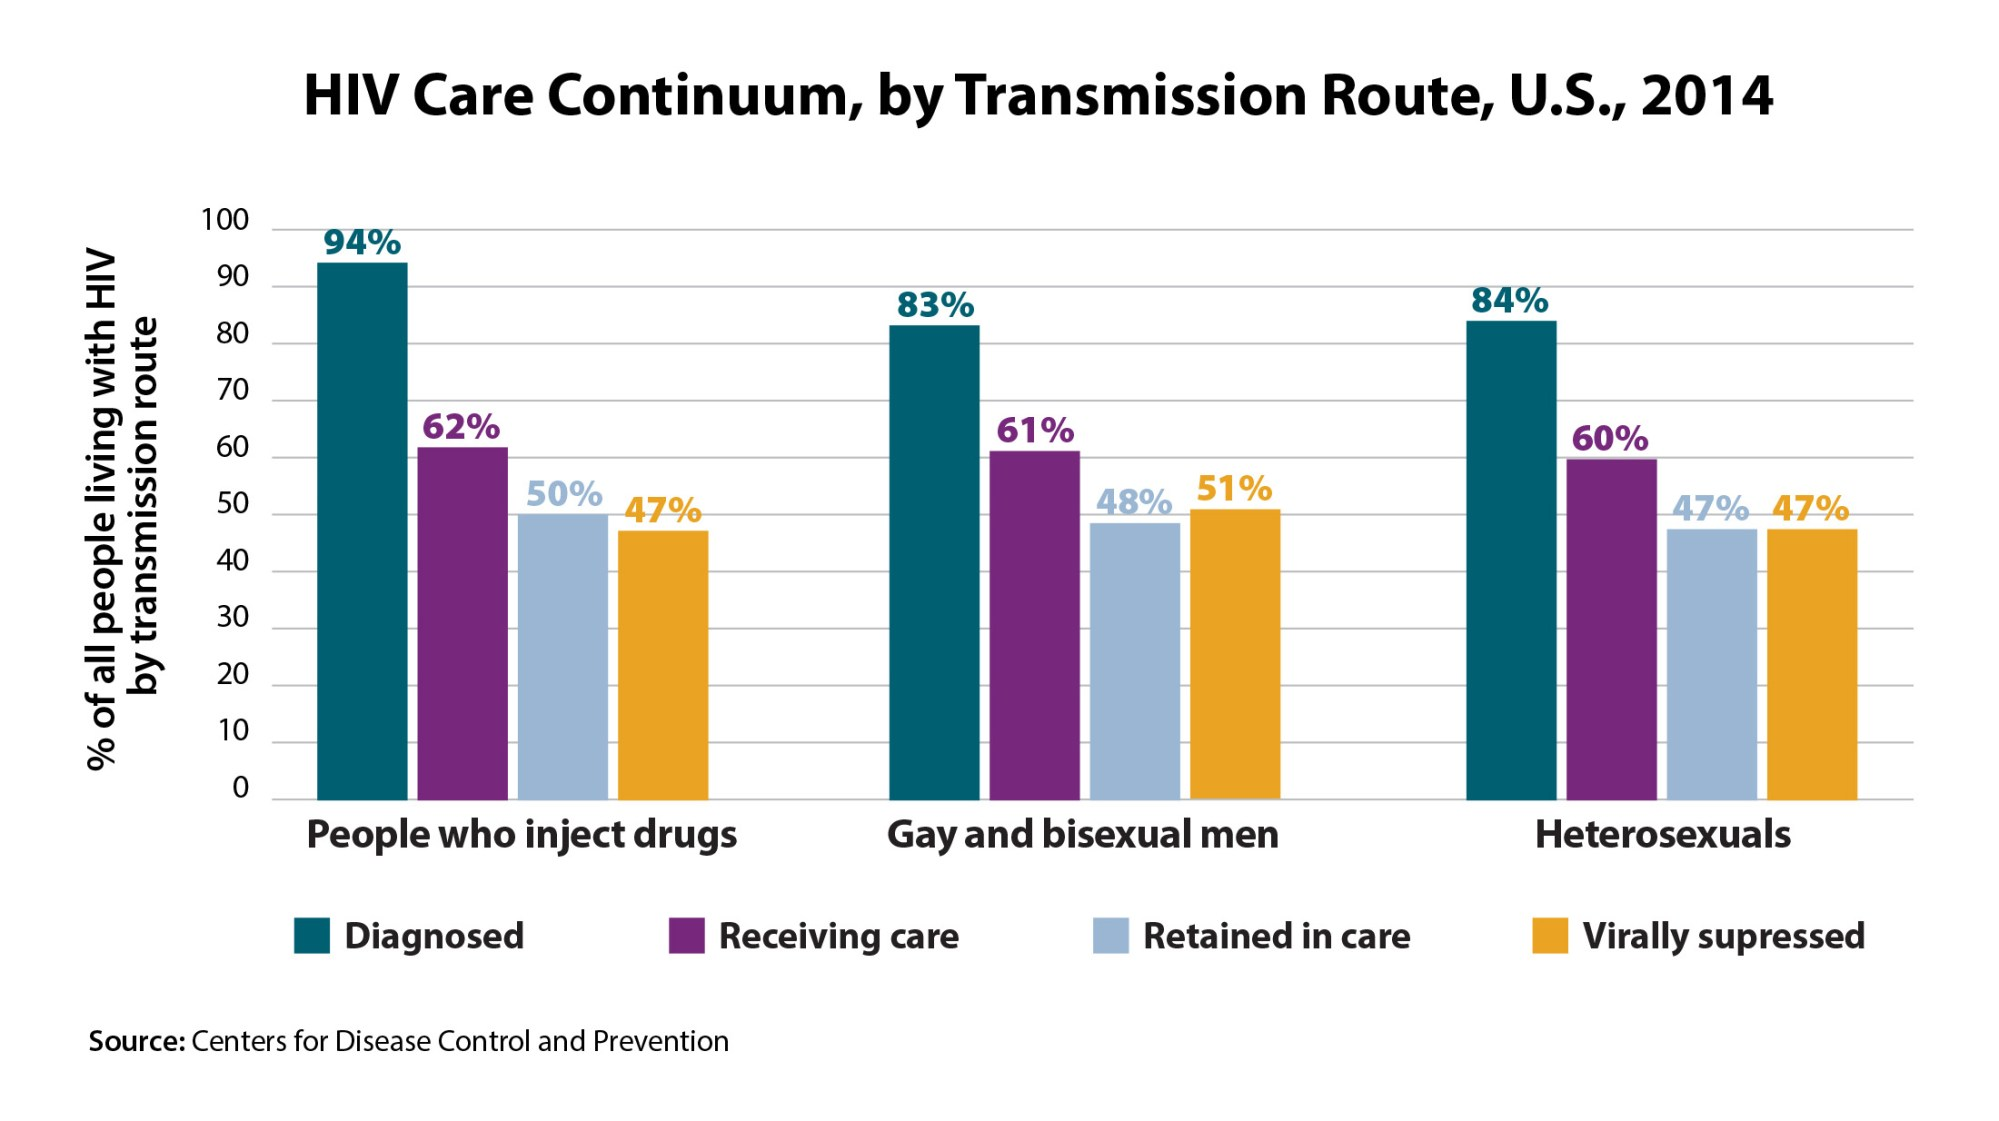 hight resolution of hiv care continuum by transmission route u s